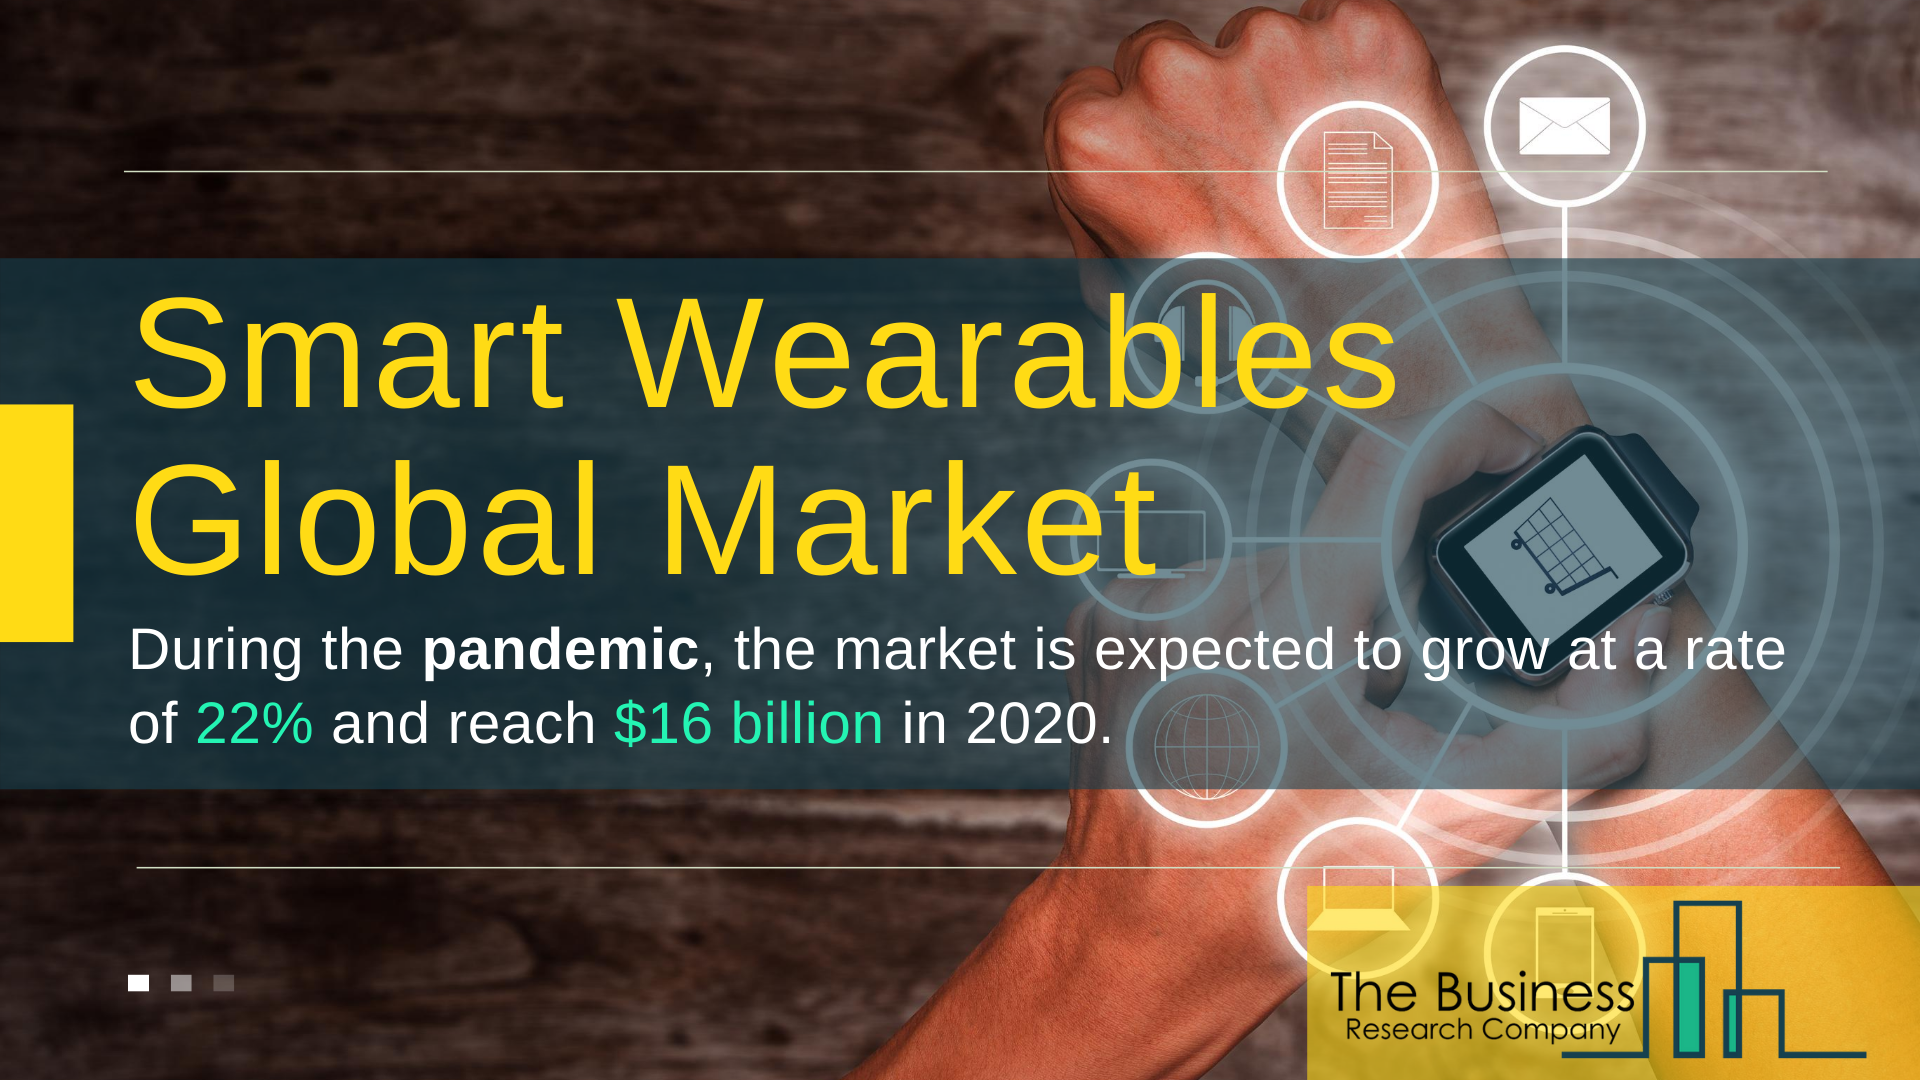 Global Smart Wearables Market Value Expected To Reach $24.5 Billion By 2023